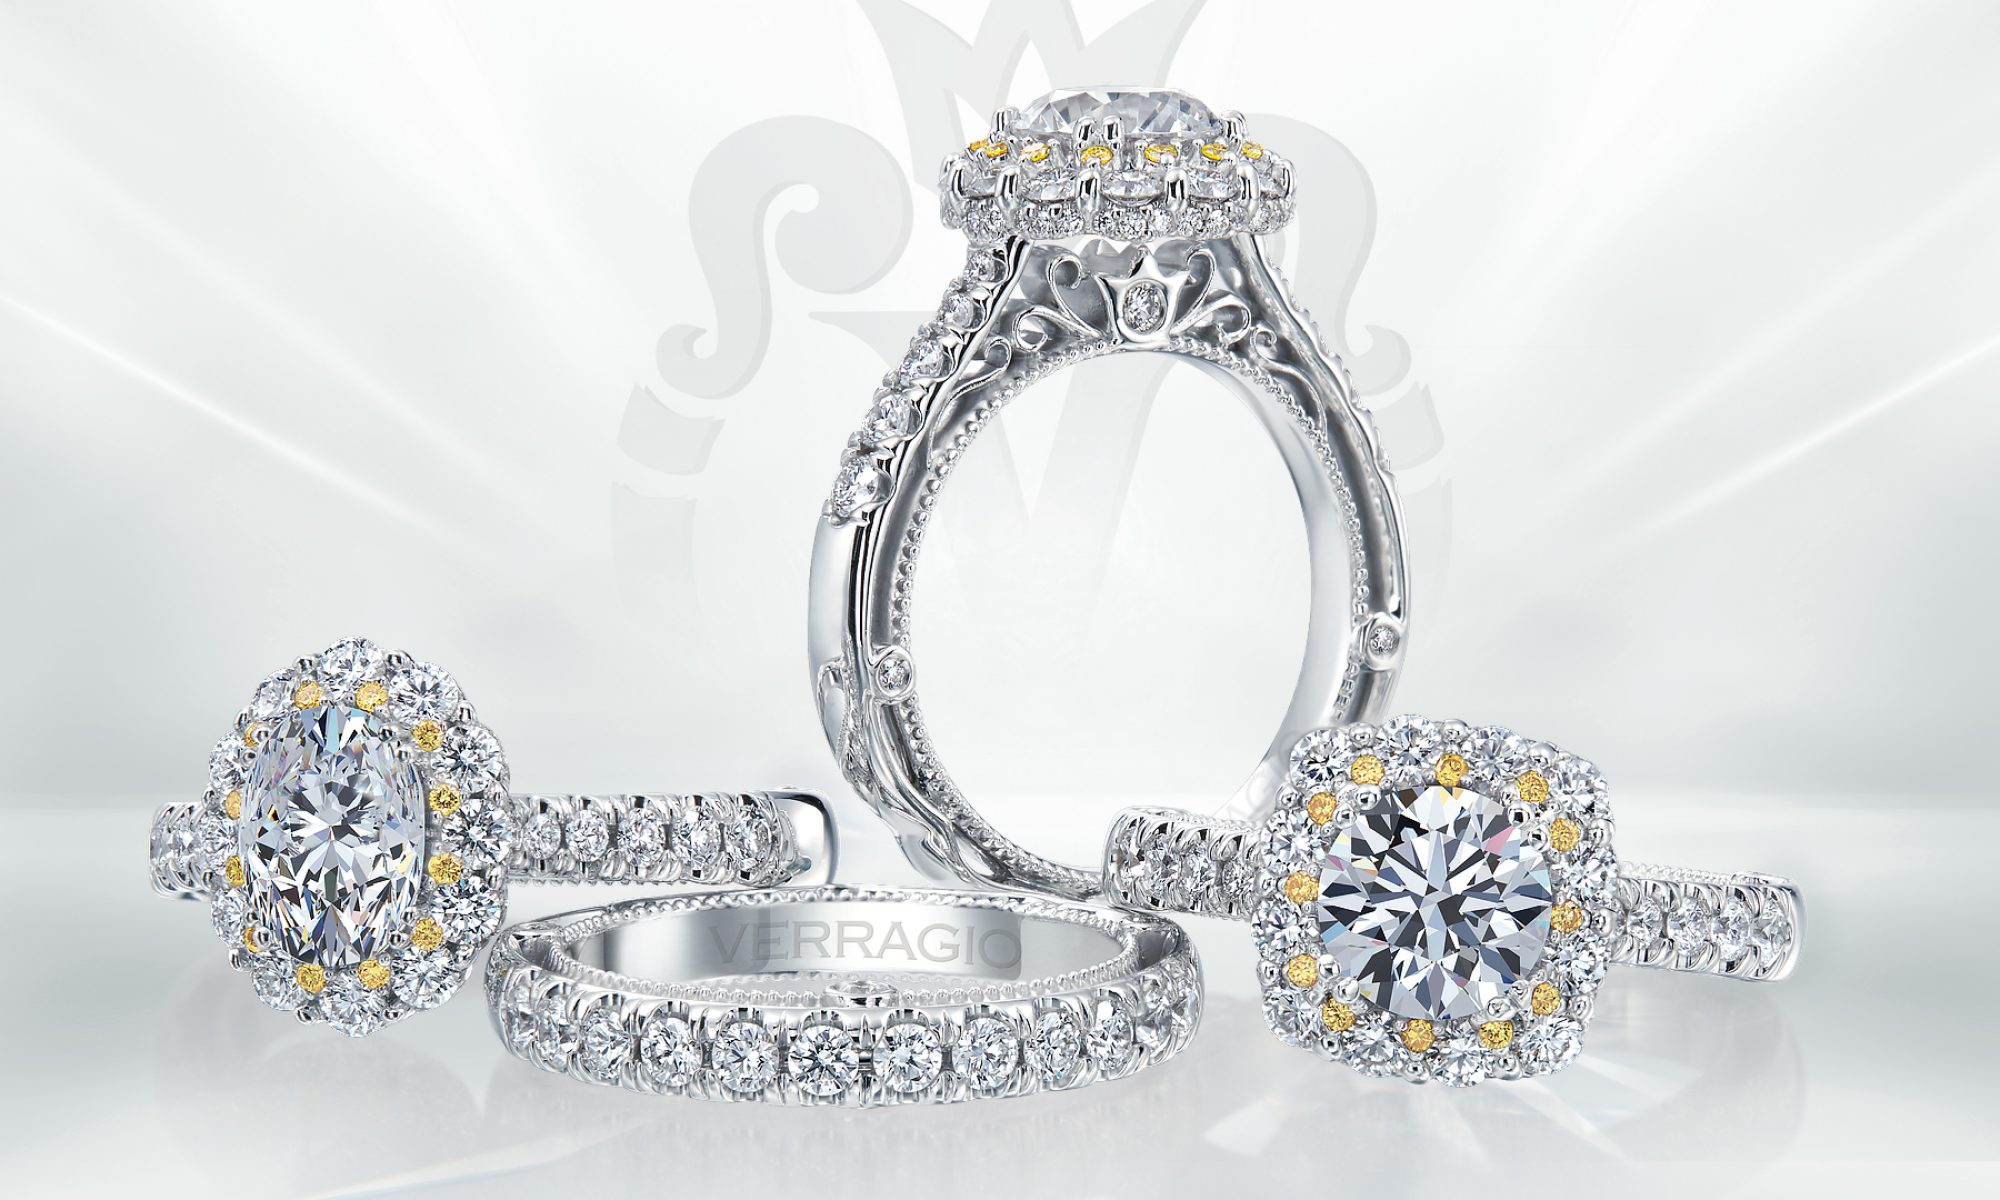 Verragio News - All about jewelry, engagement rings and wedding bands